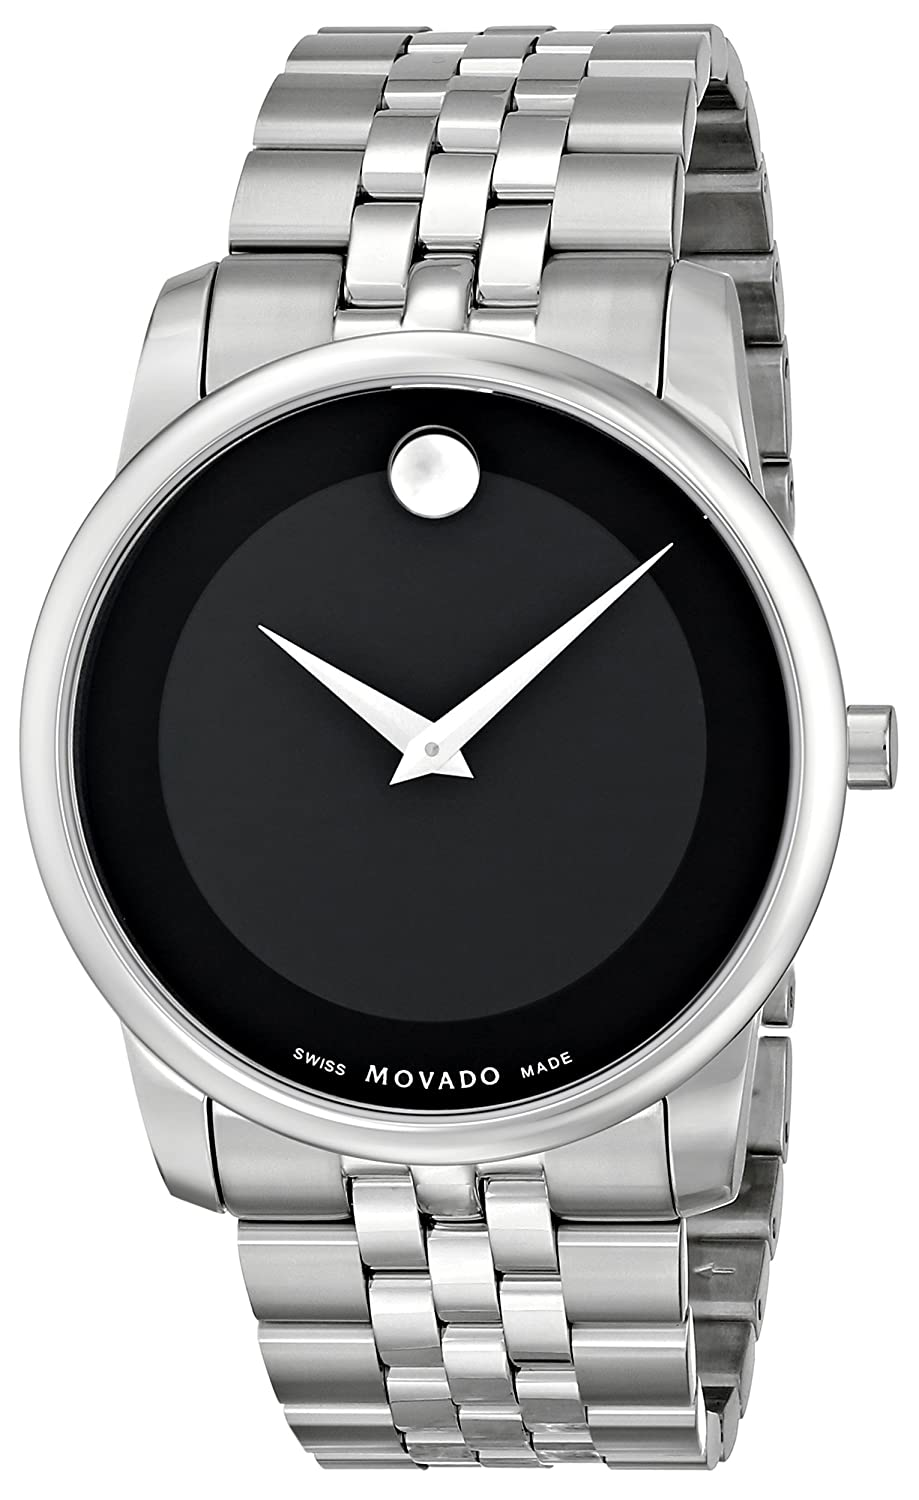 watch wyca reviews shot watches wrist luno review movado